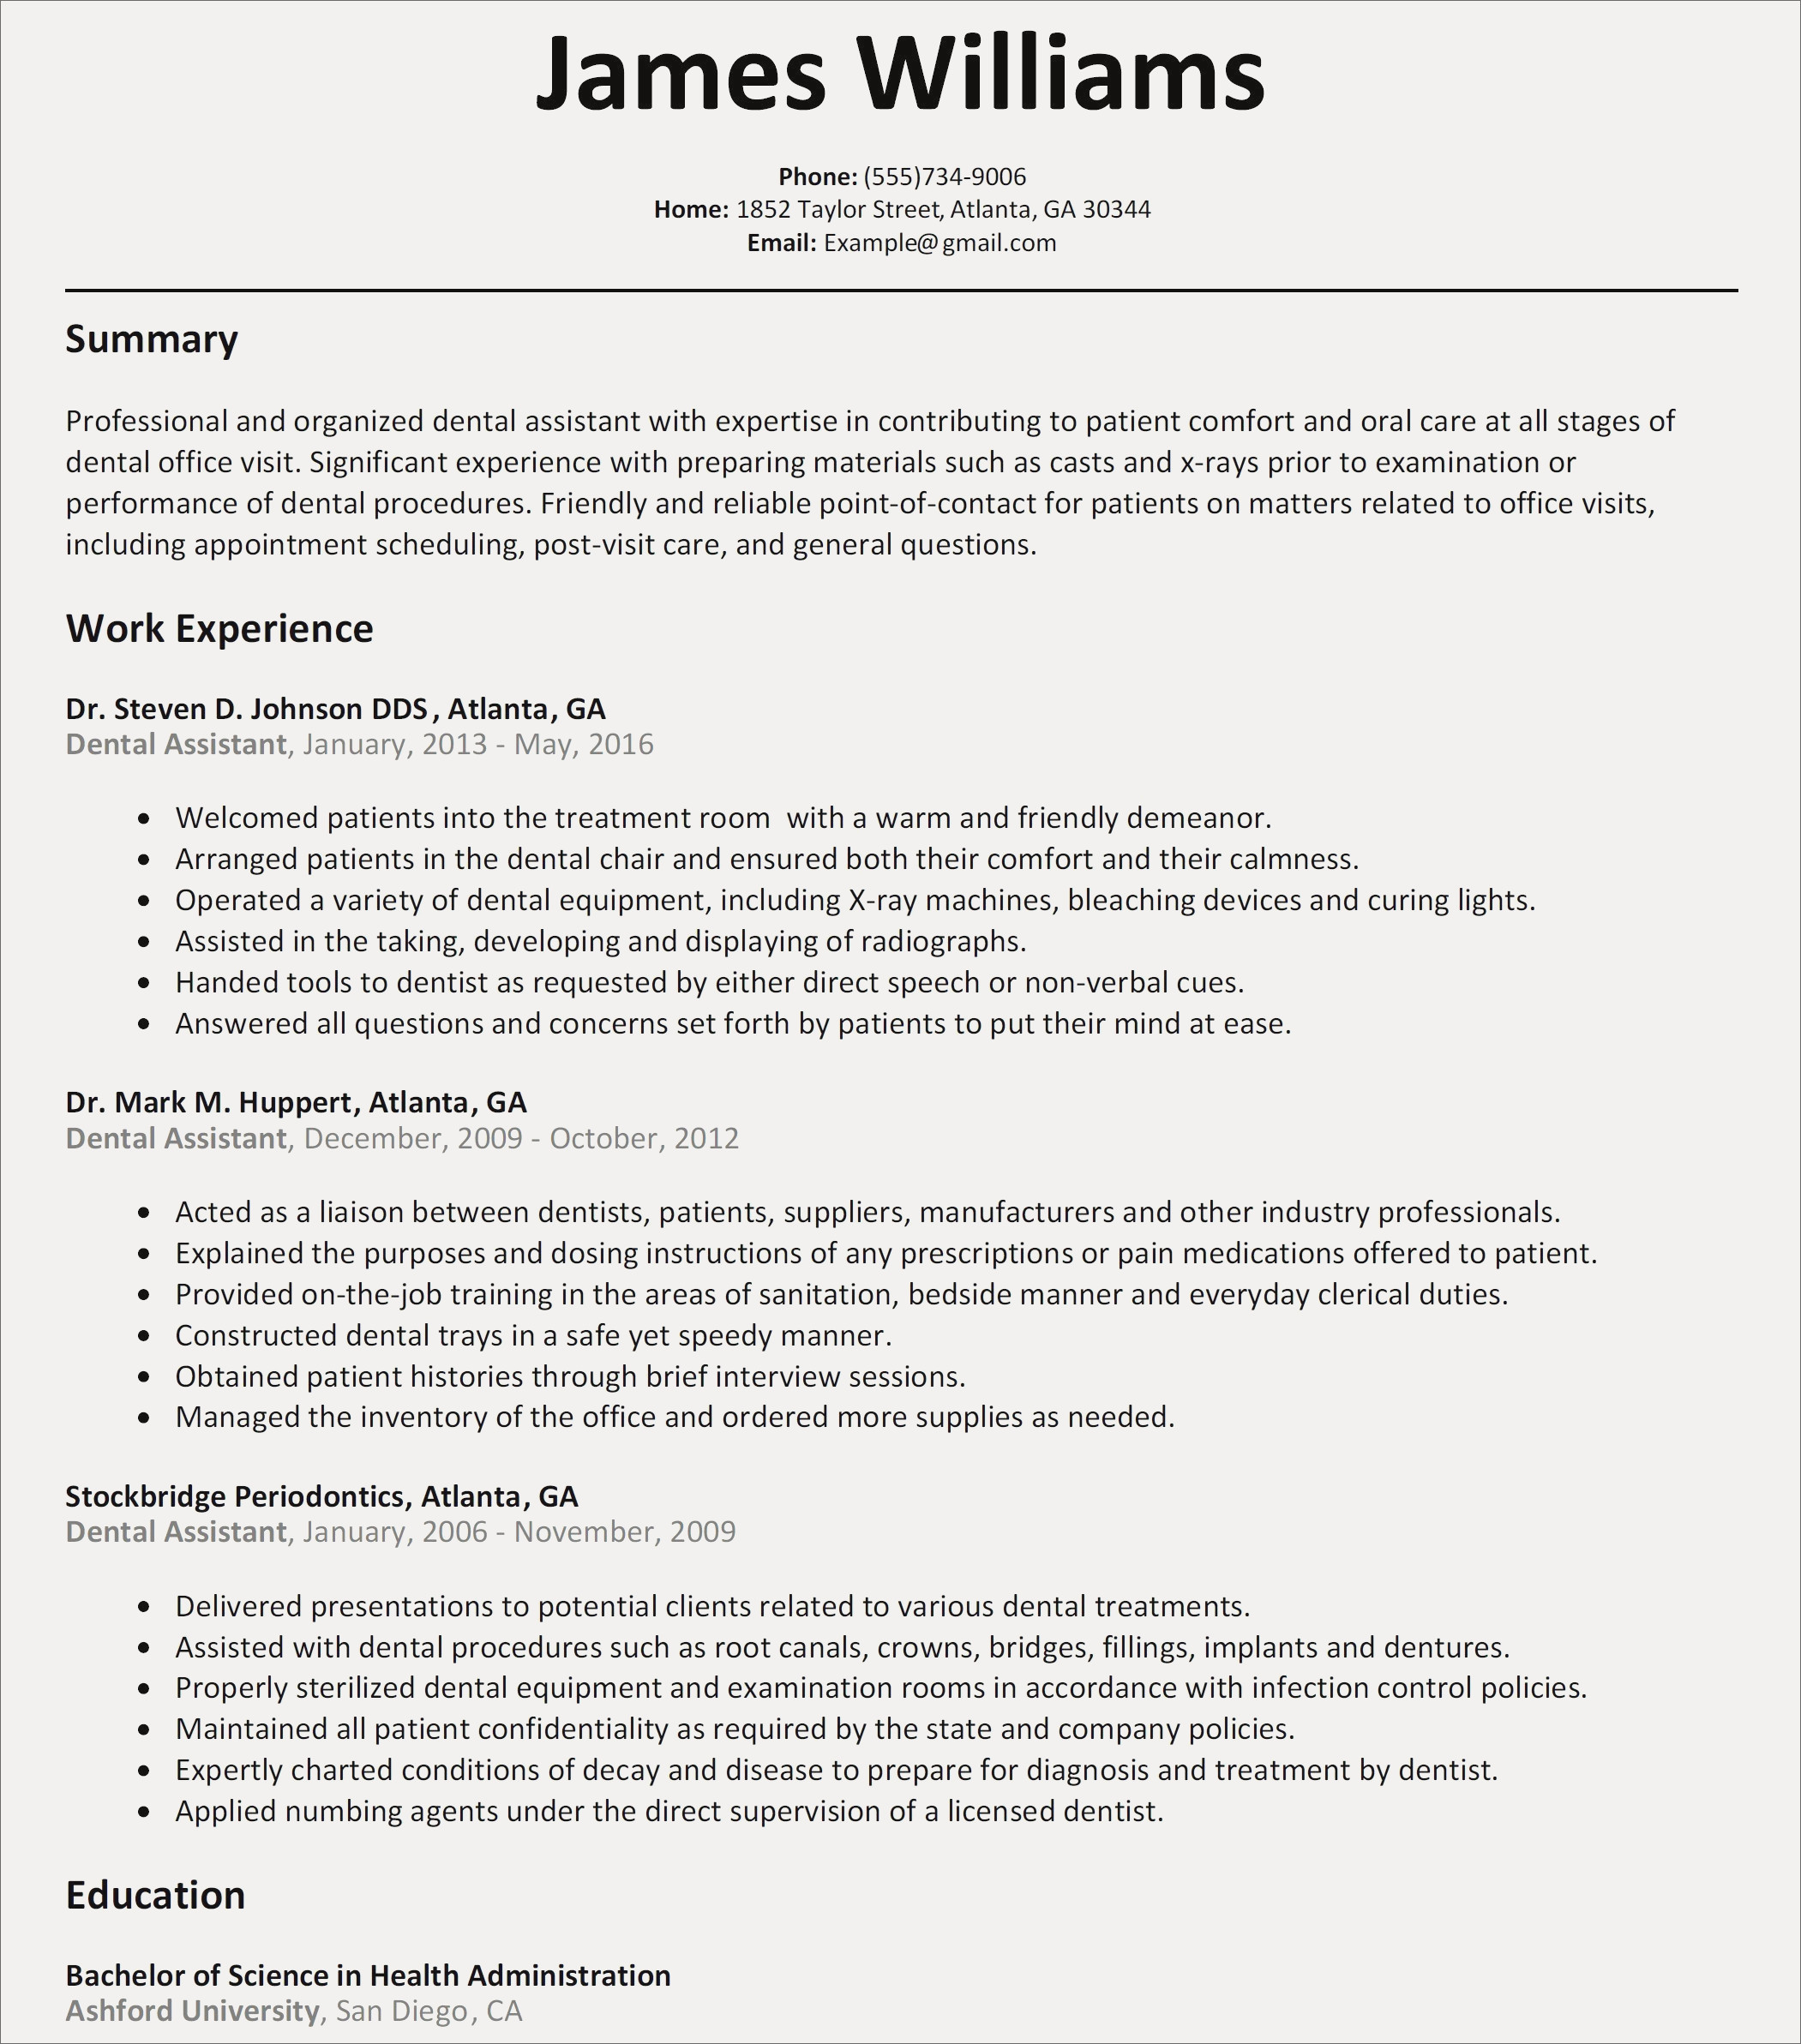 What Makes A Great Resume - How to Make A Resume Cove Best How to Write A Cover Letter for